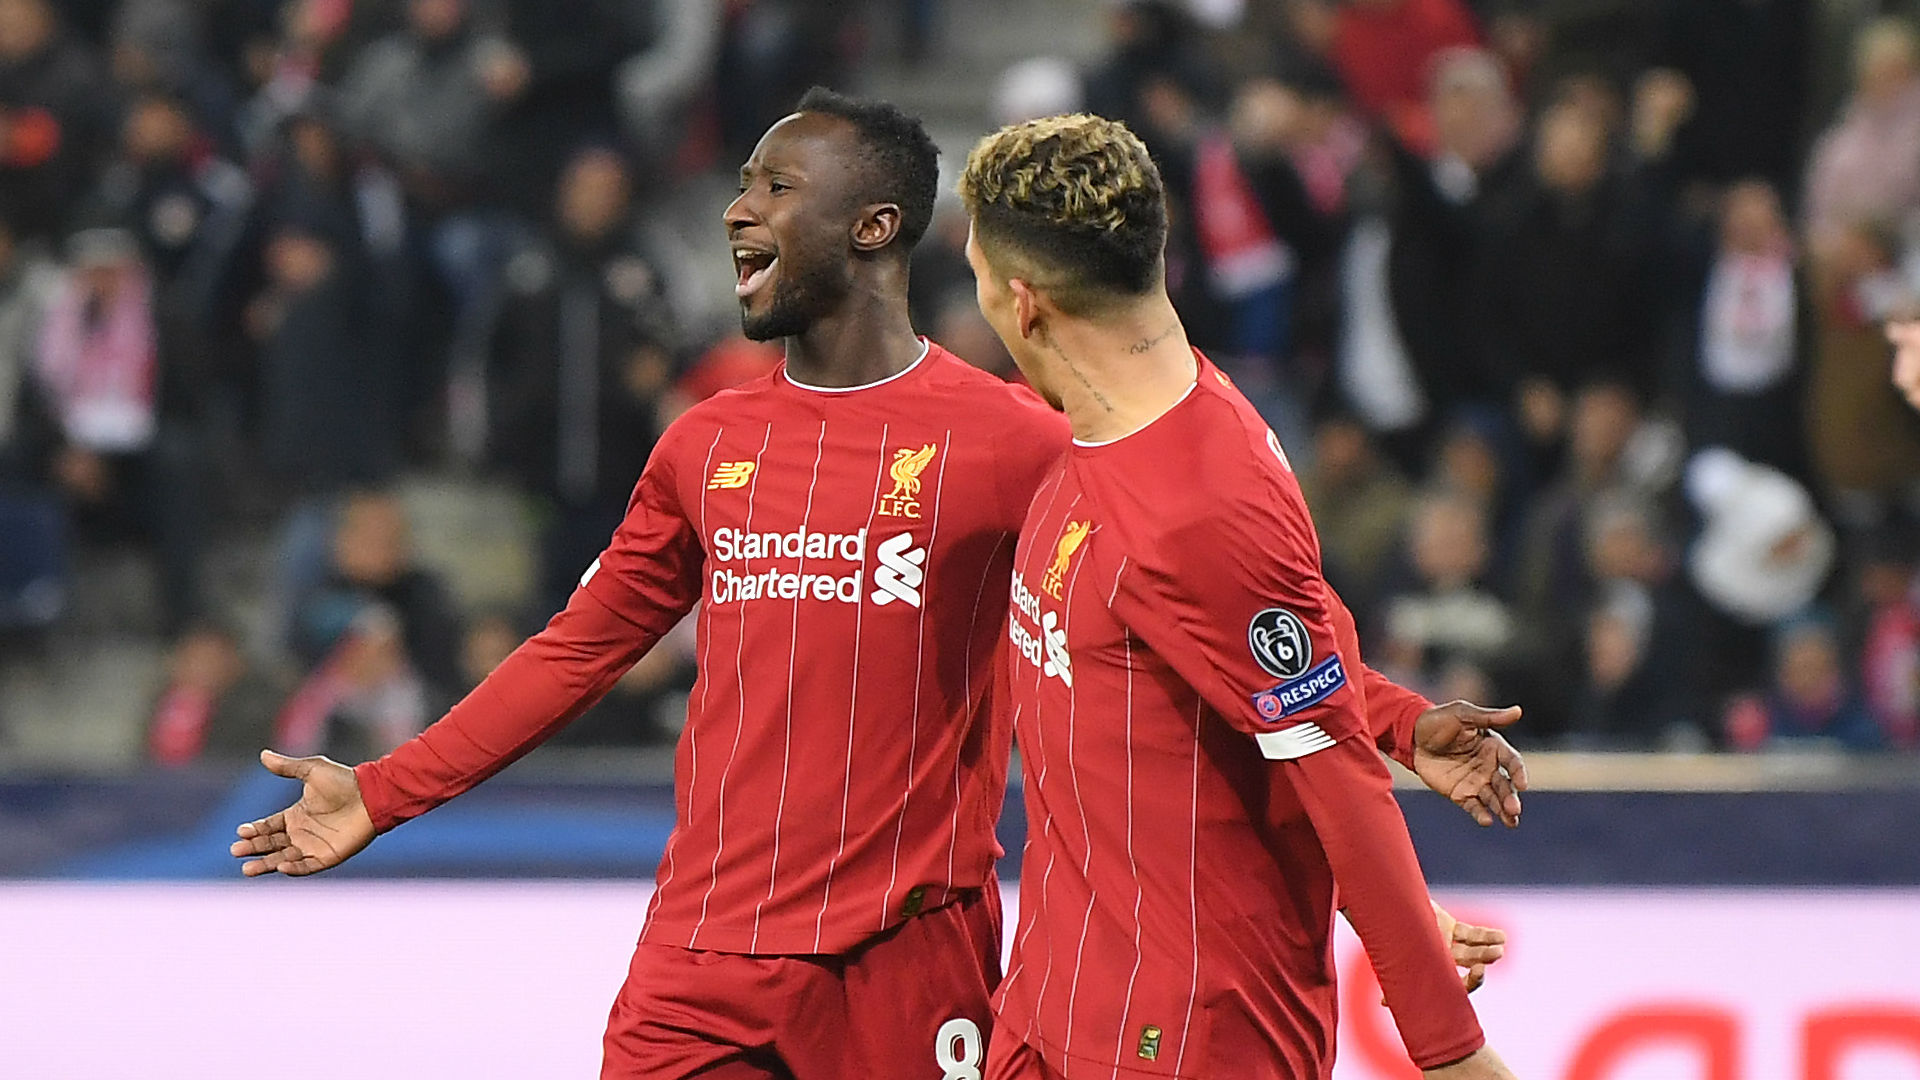 No team will want to face Liverpool in Champions League draw - Robertson